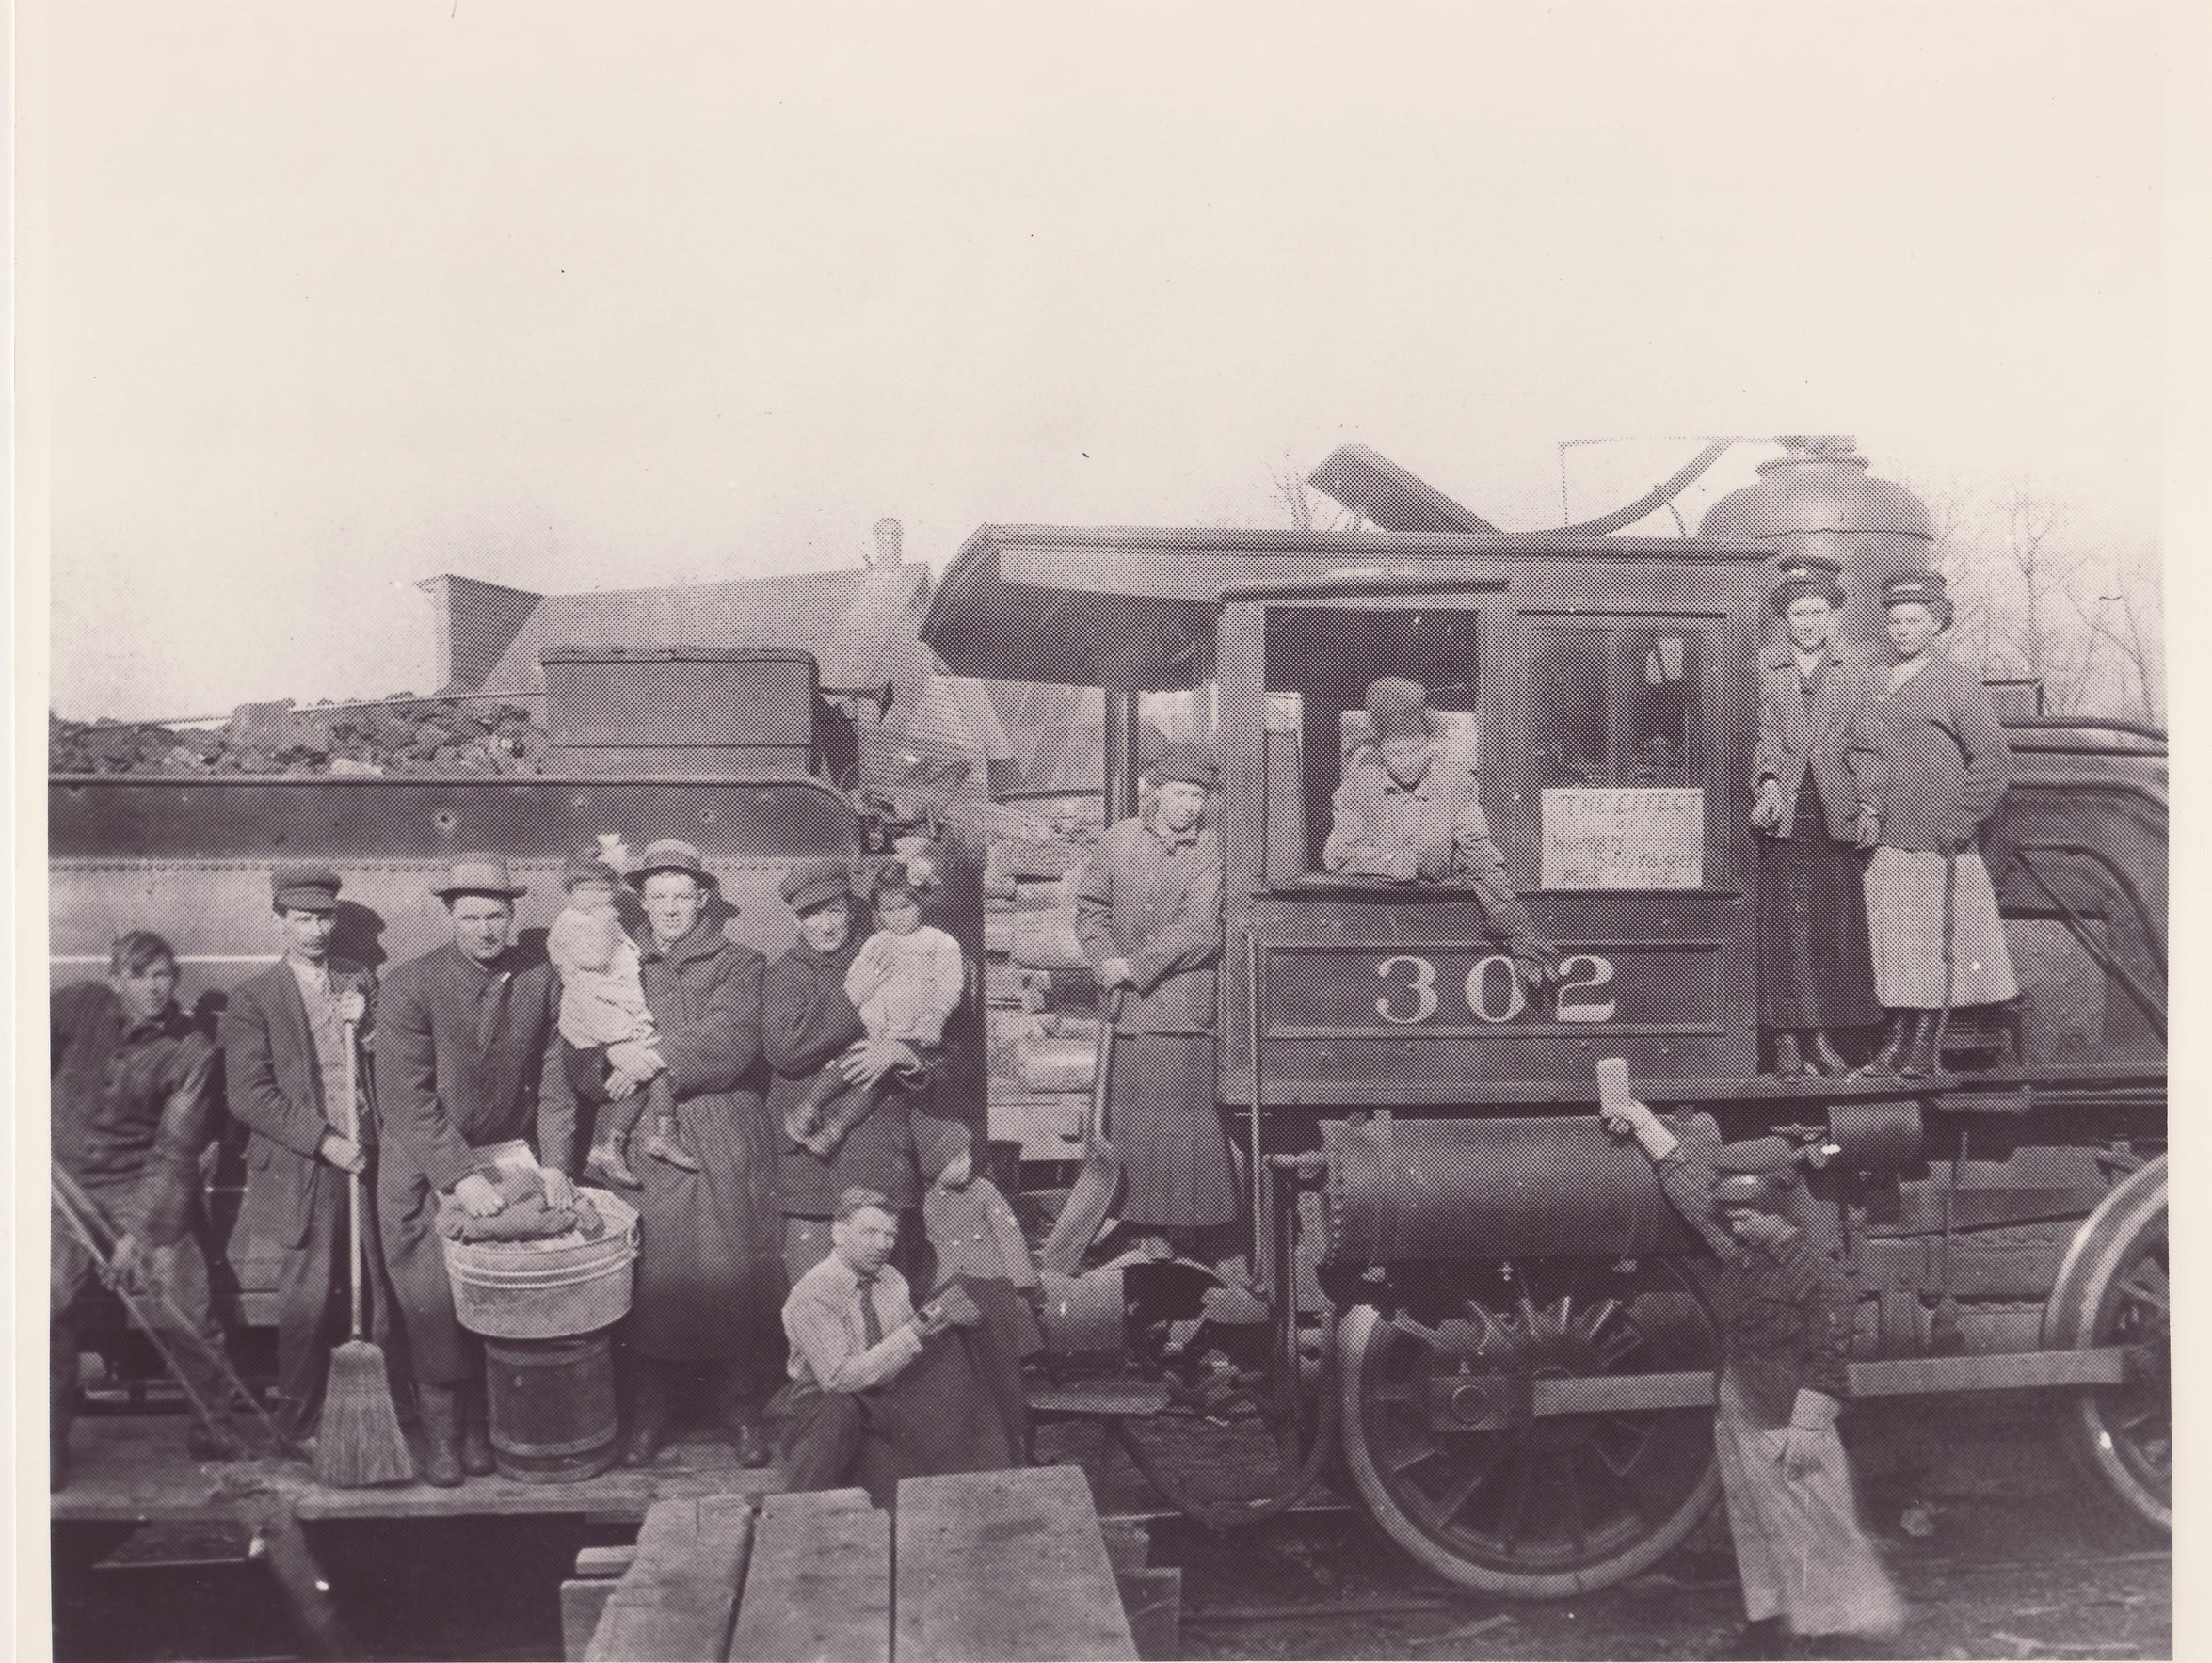 This early 20th Century photo provided by the Michigan